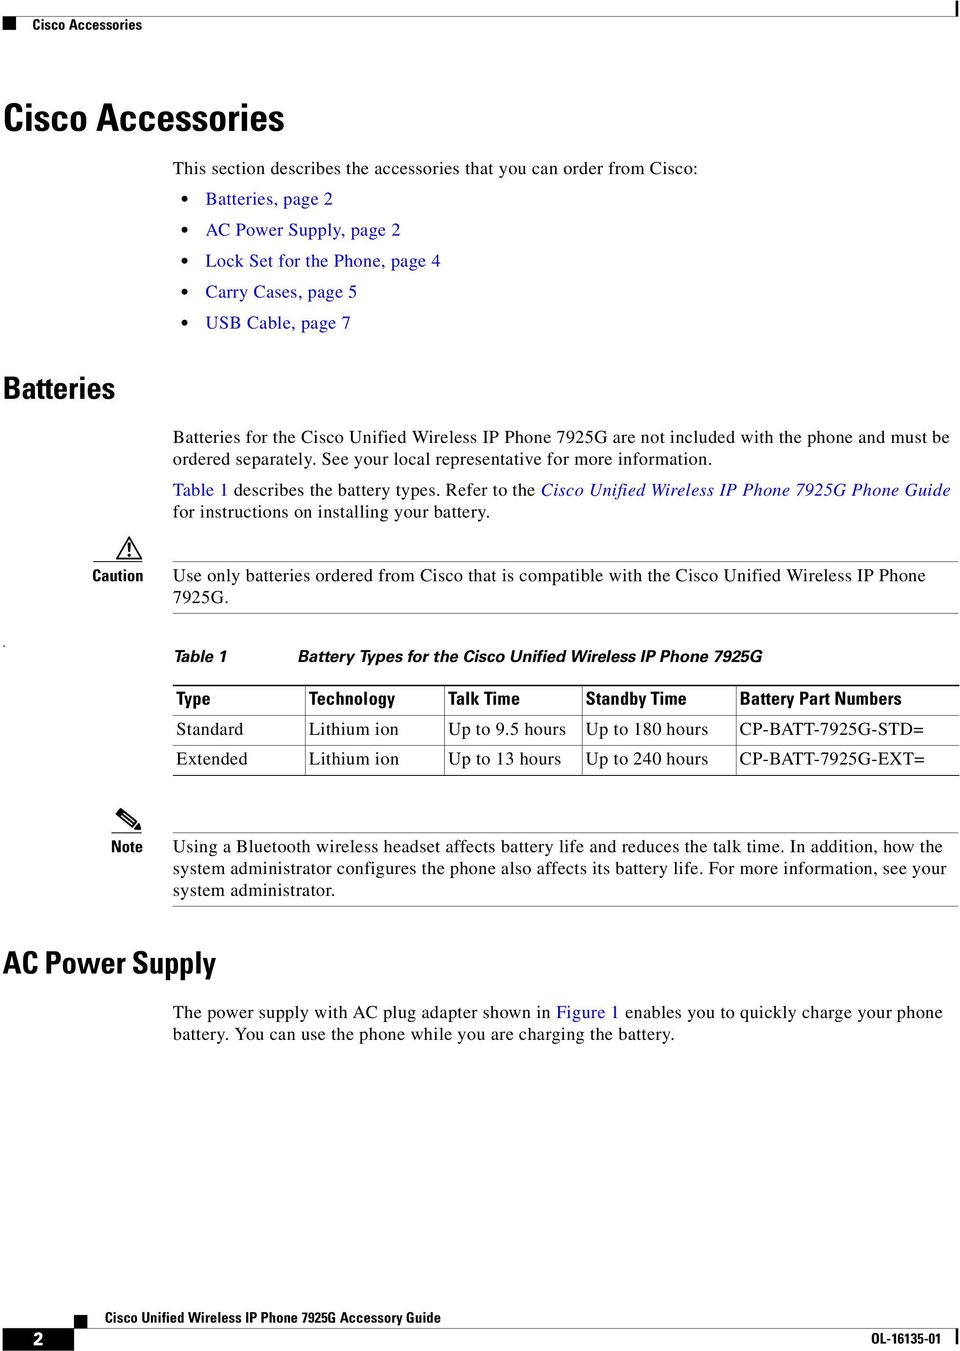 Table 1 describes the battery types. Refer to the Cisco Unified Wireless IP Phone 7925G Phone Guide for instructions on installing your battery.